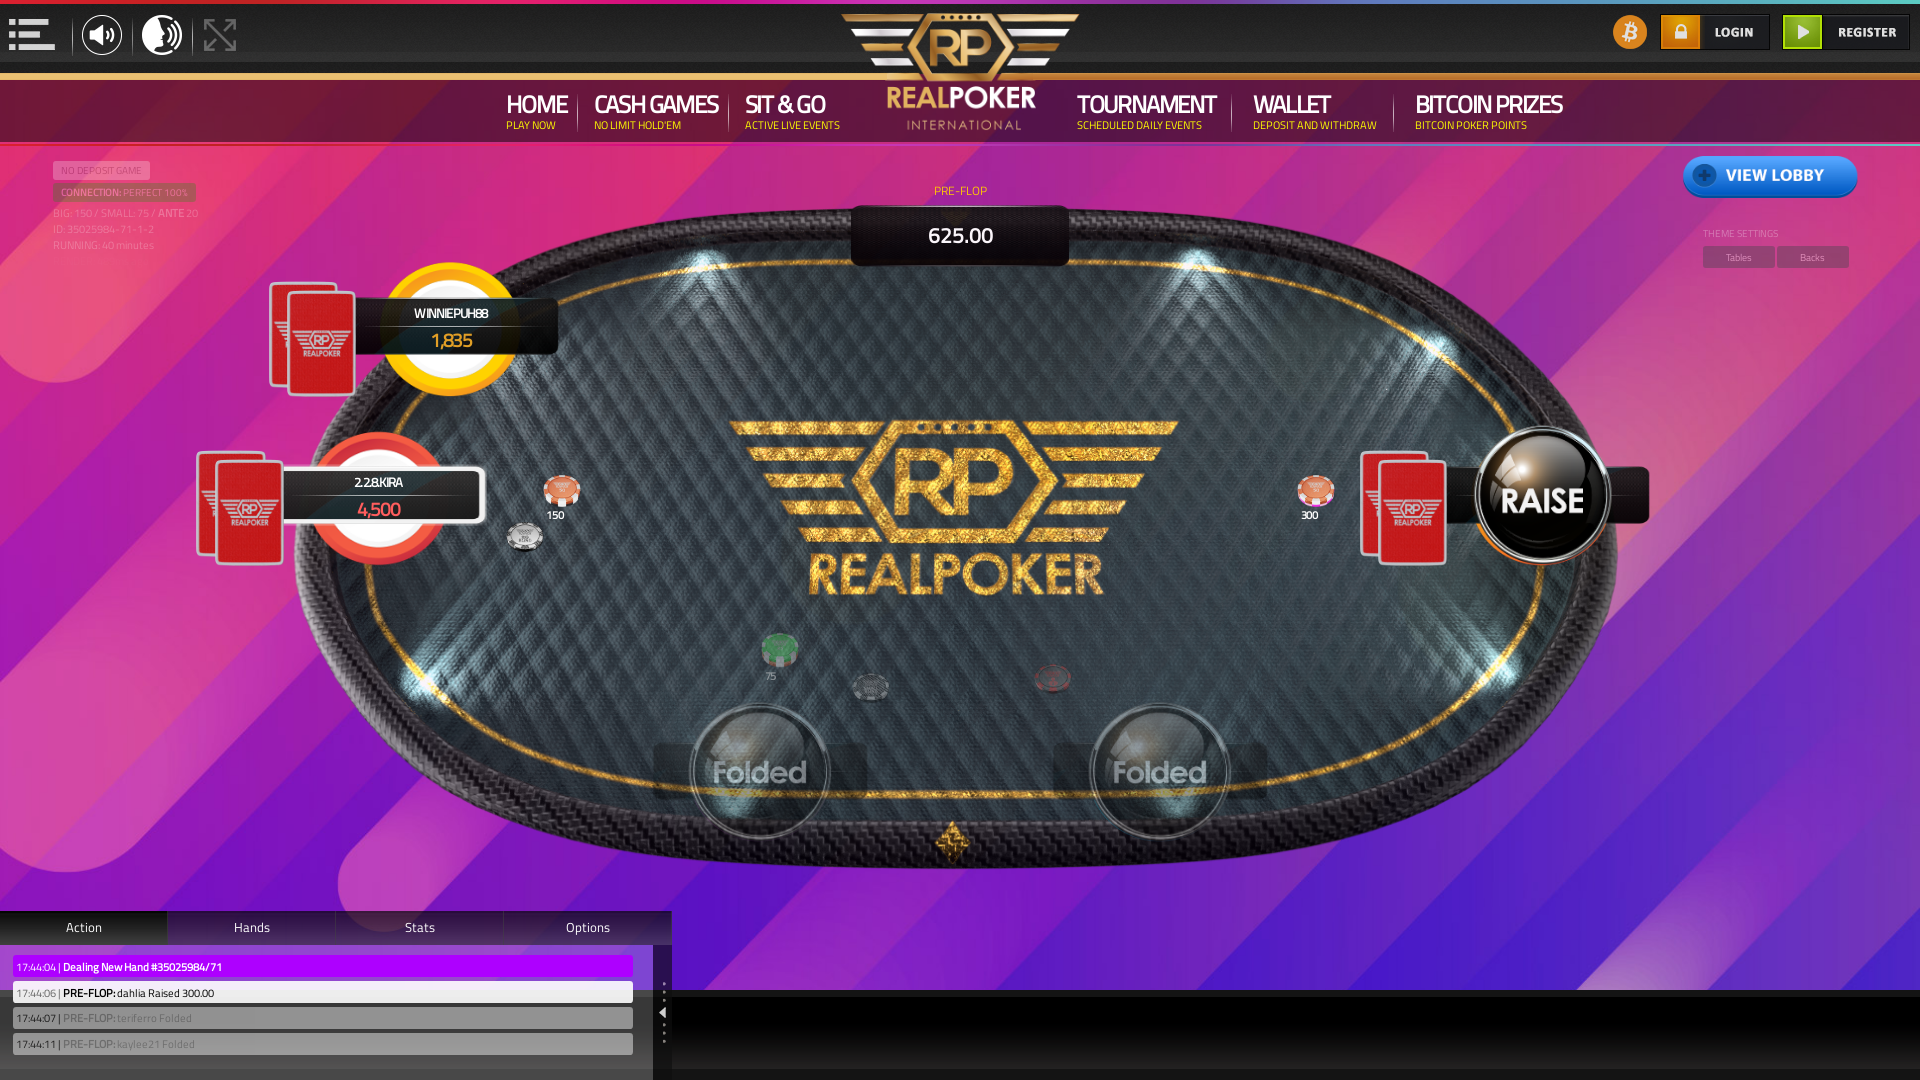 10 player texas holdem table at real poker with the table id 35025984